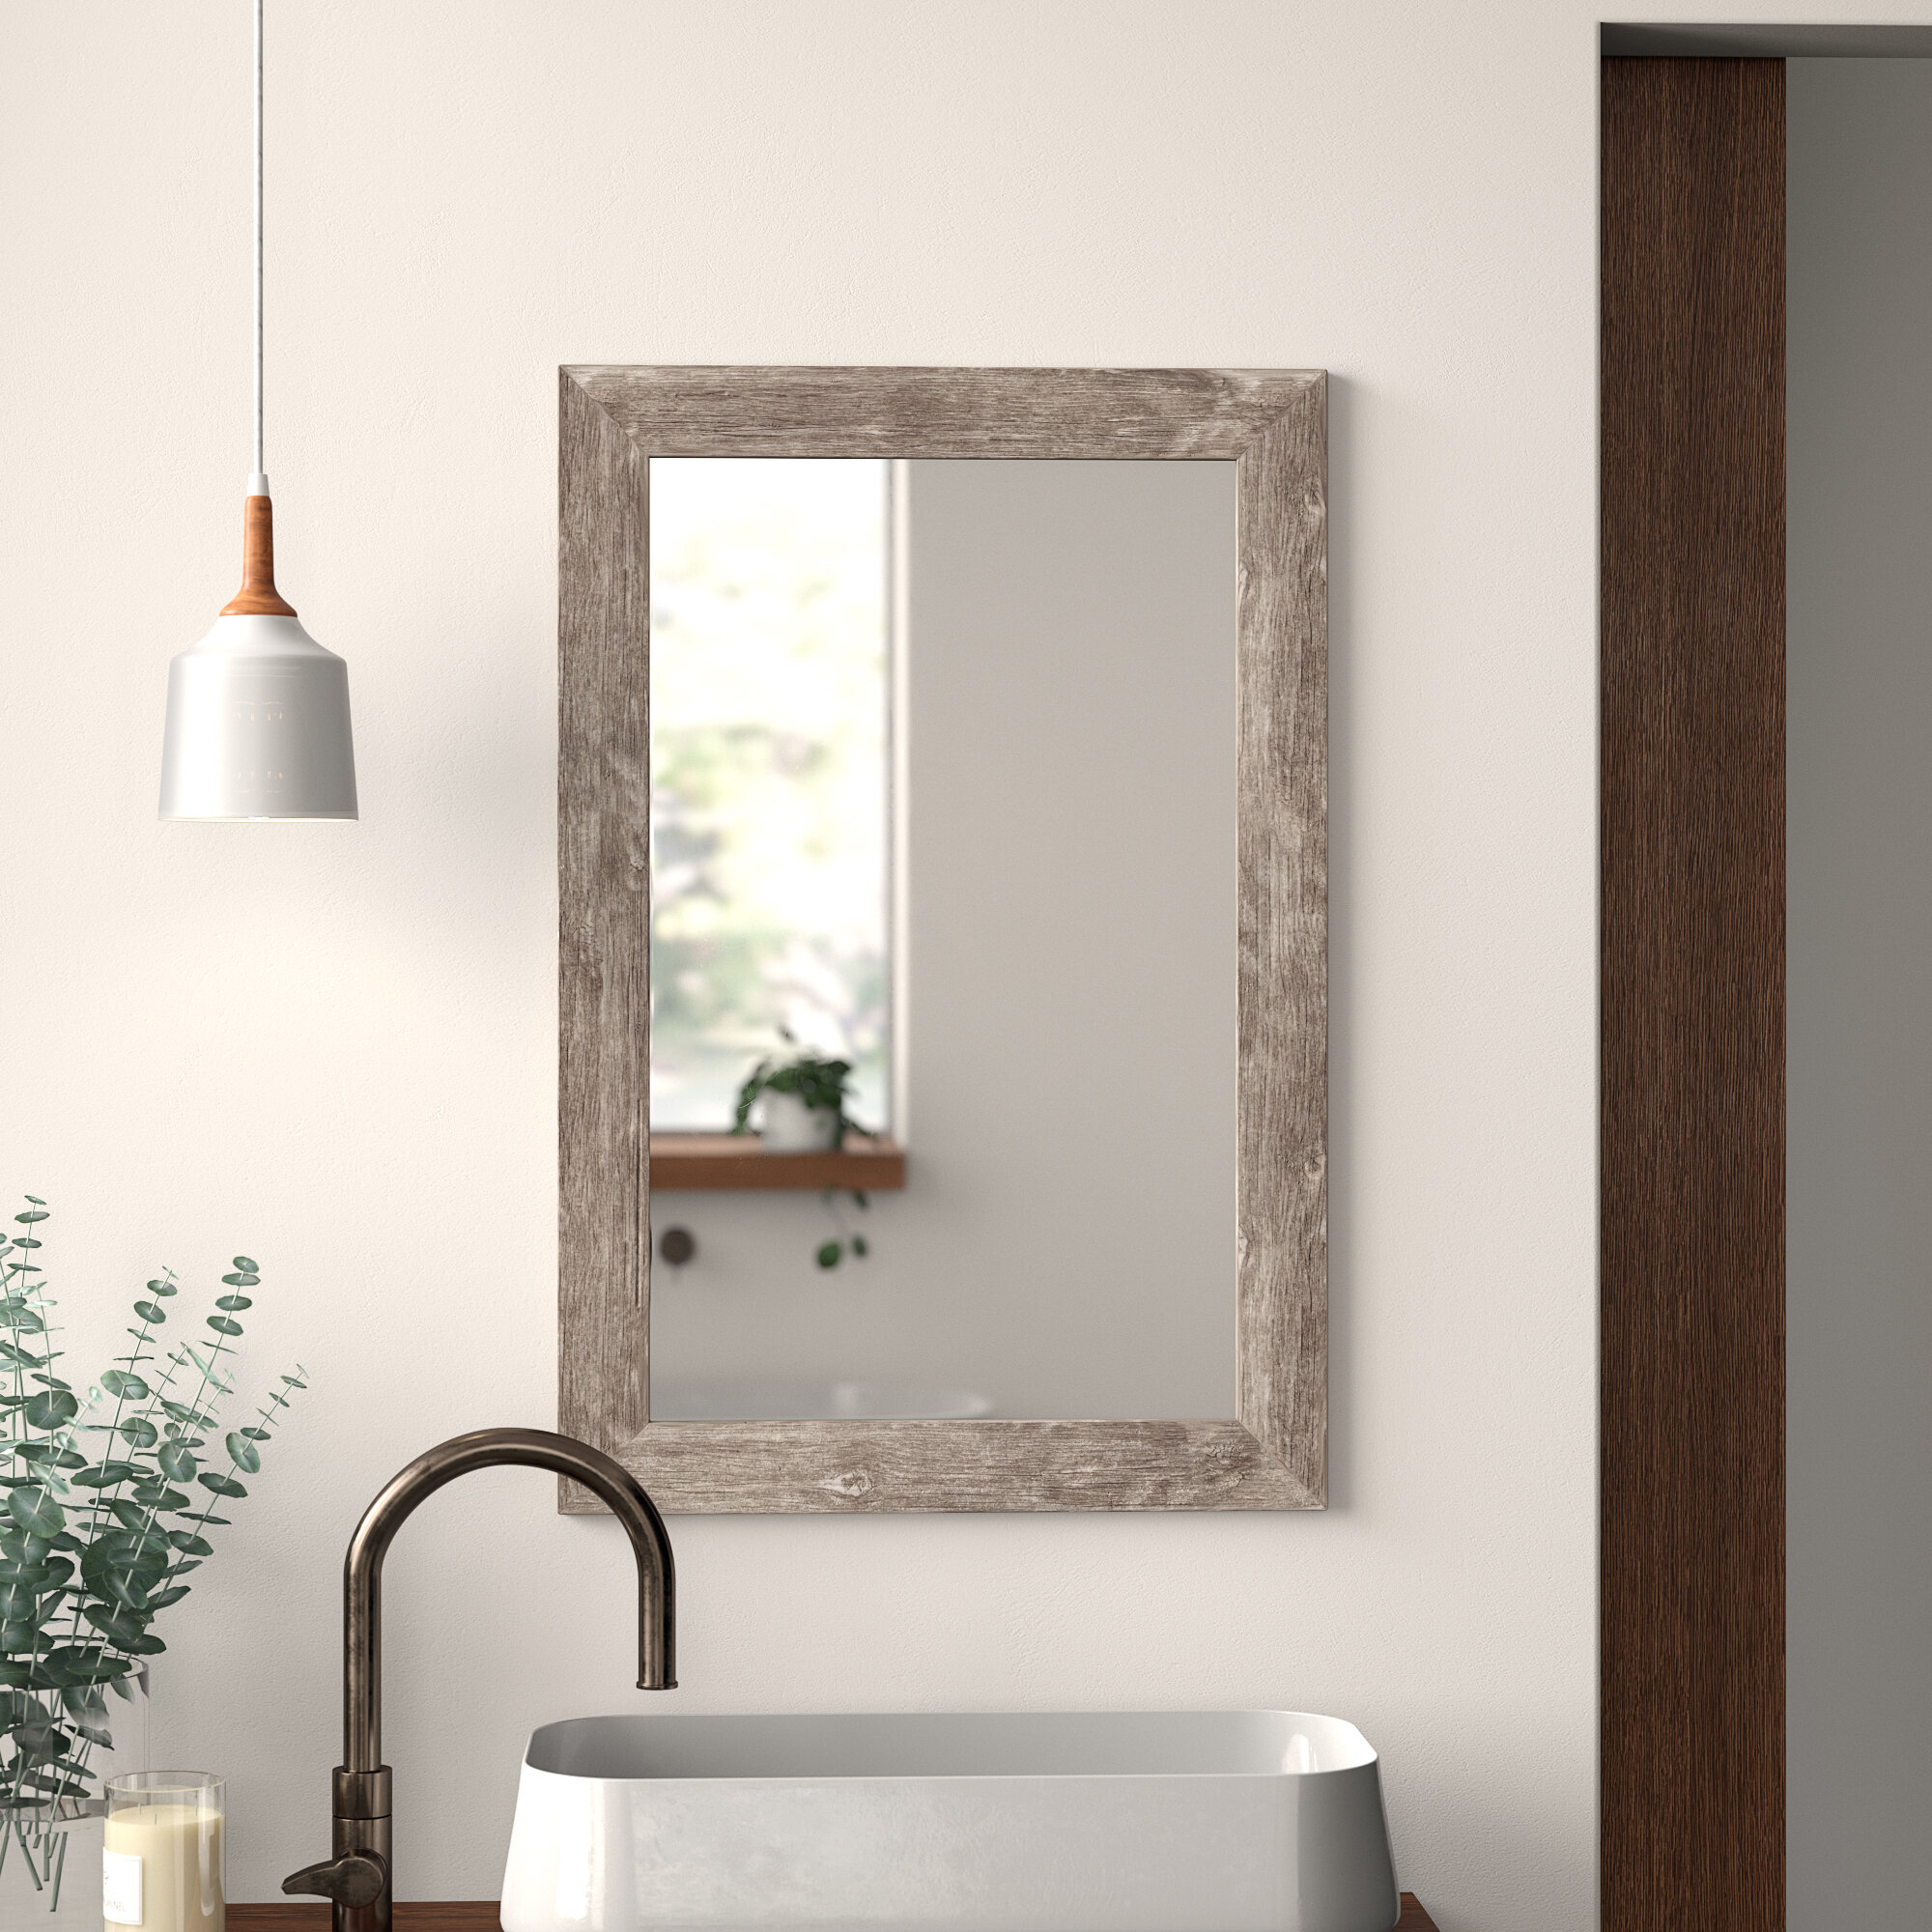 Modern Rectangle Bathroom Mirrors | Allmodern Pertaining To Booth Reclaimed Wall Mirrors Accent (Image 9 of 20)